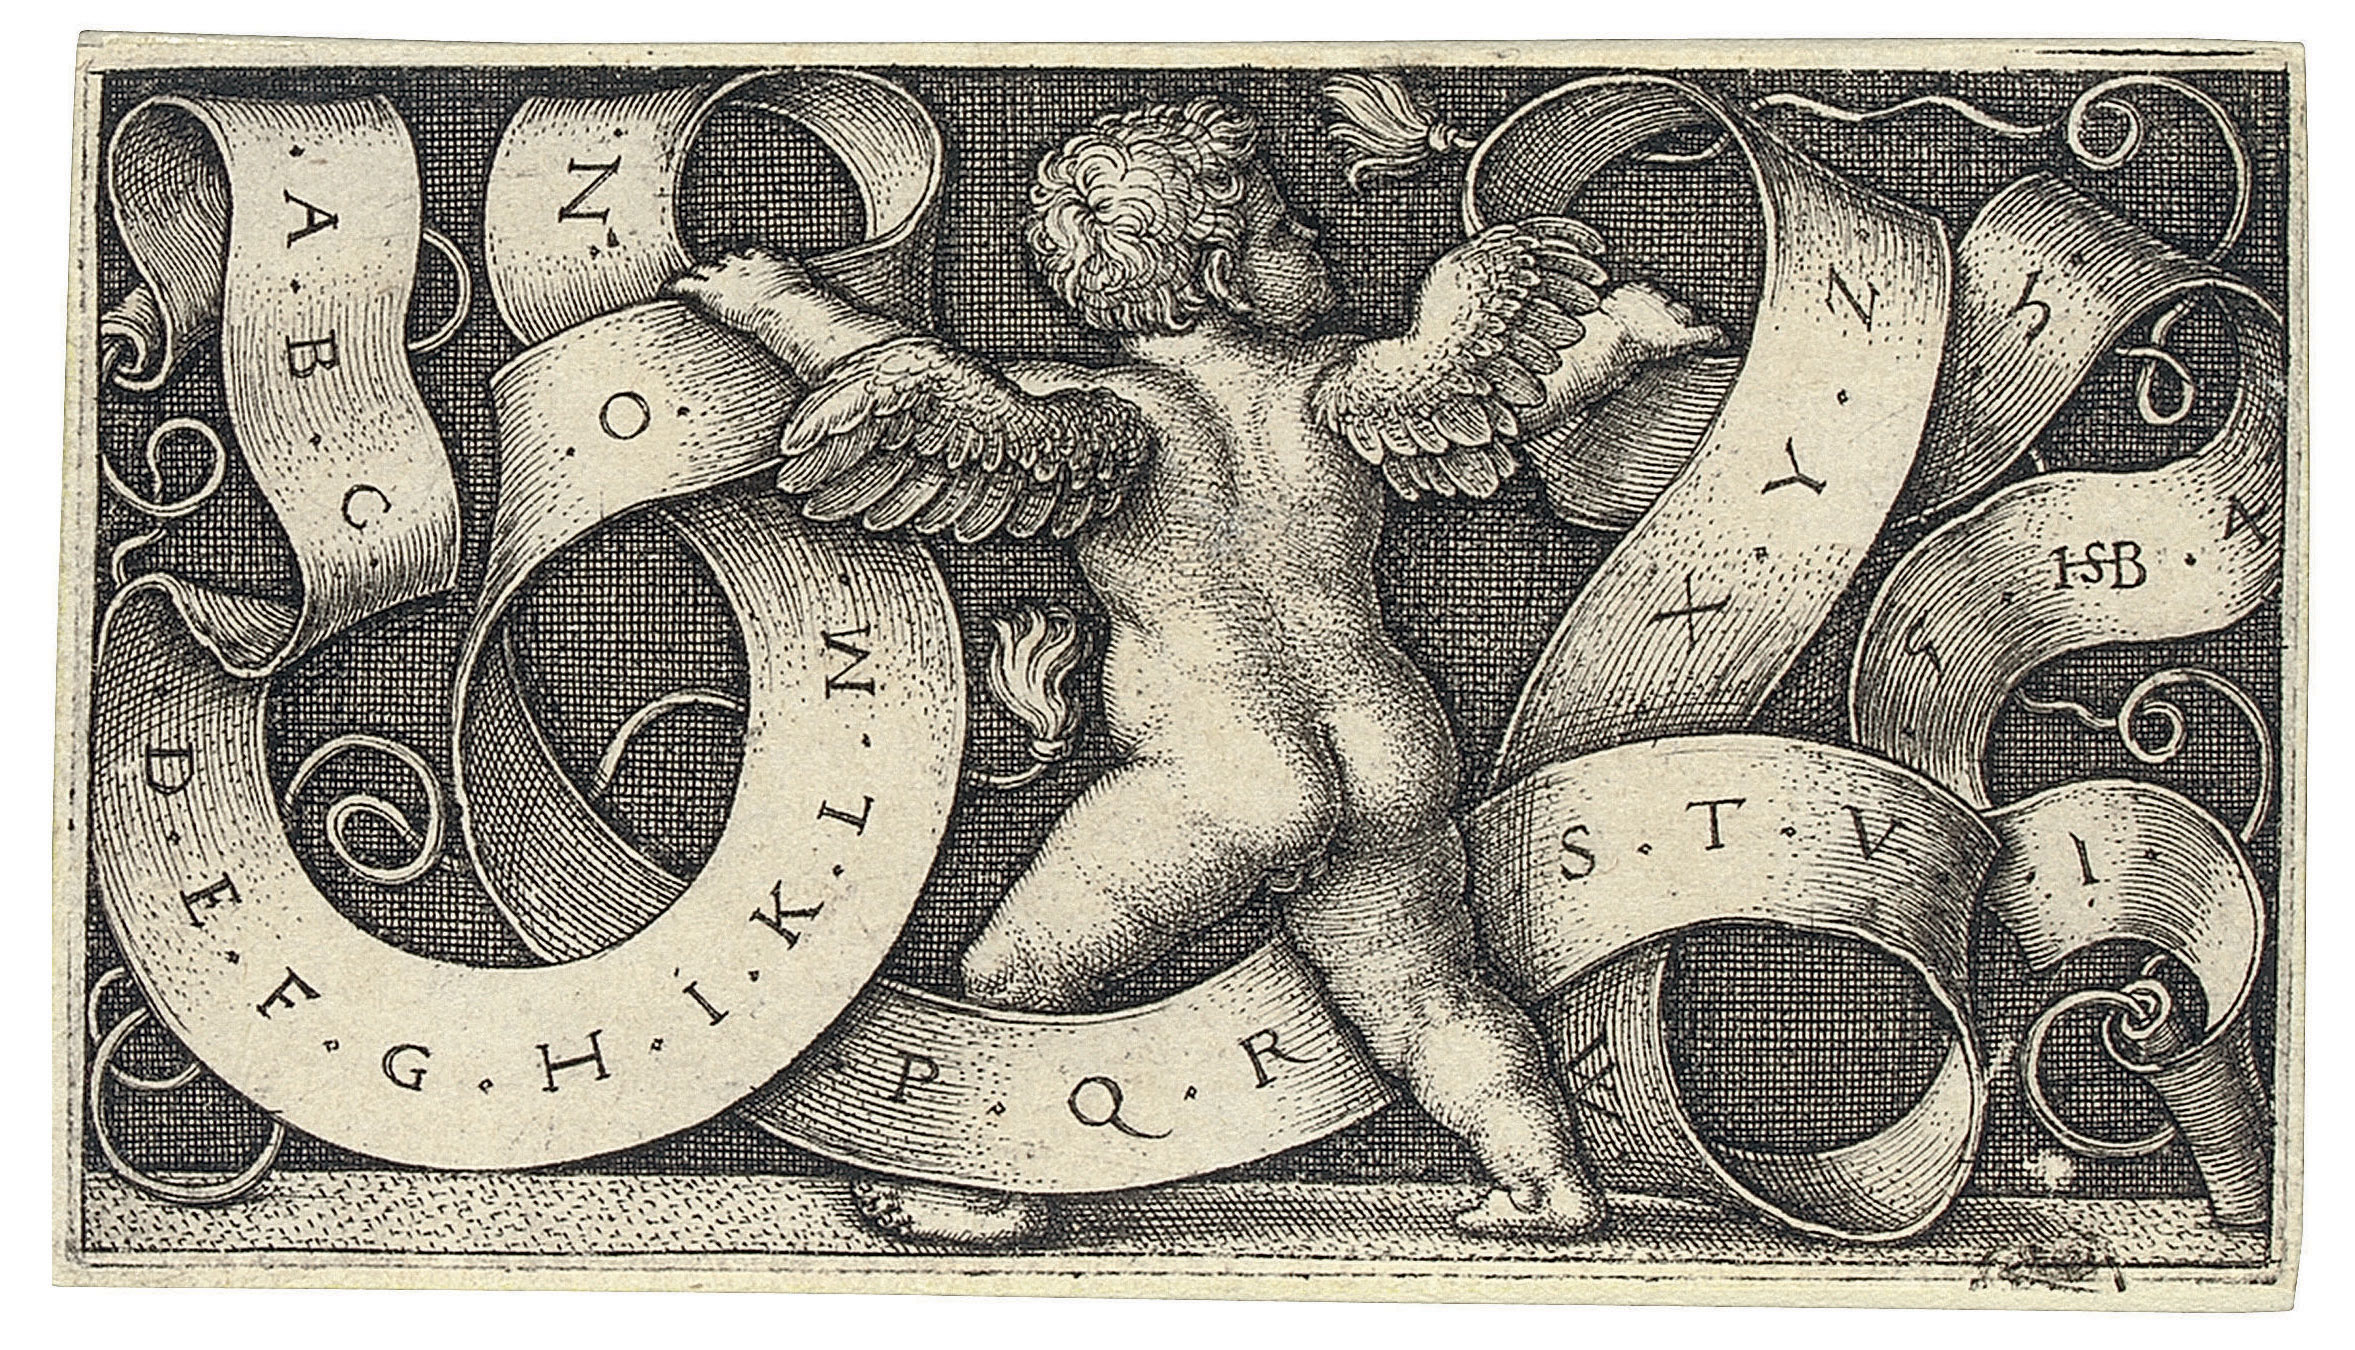 Genius with Alphabet (Bartsch 229; Pauli, Hollstein 233)